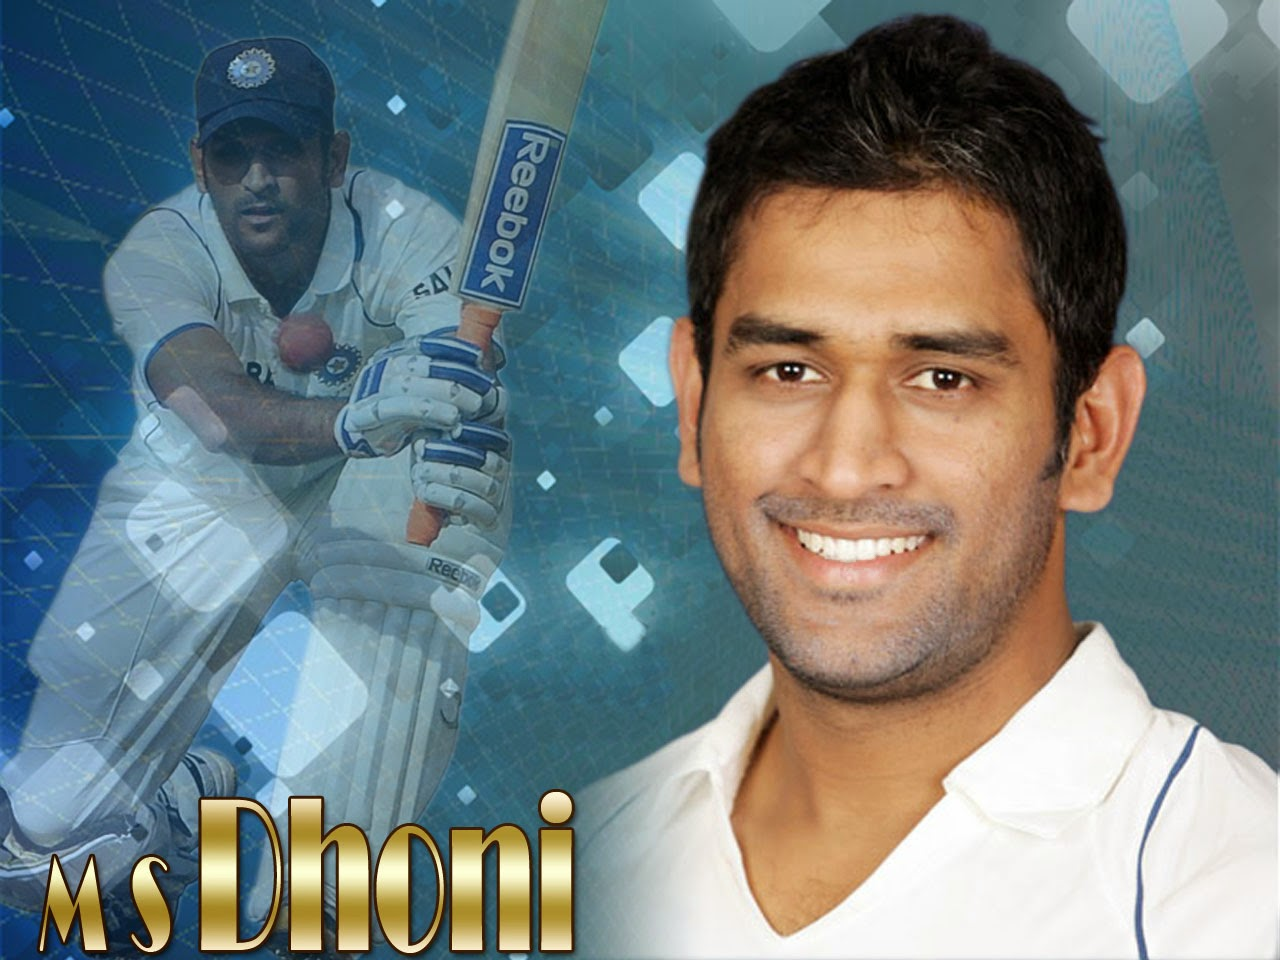 Ms Dhoni New Wallpapers 10 Wallpapers Adorable Wallpapers